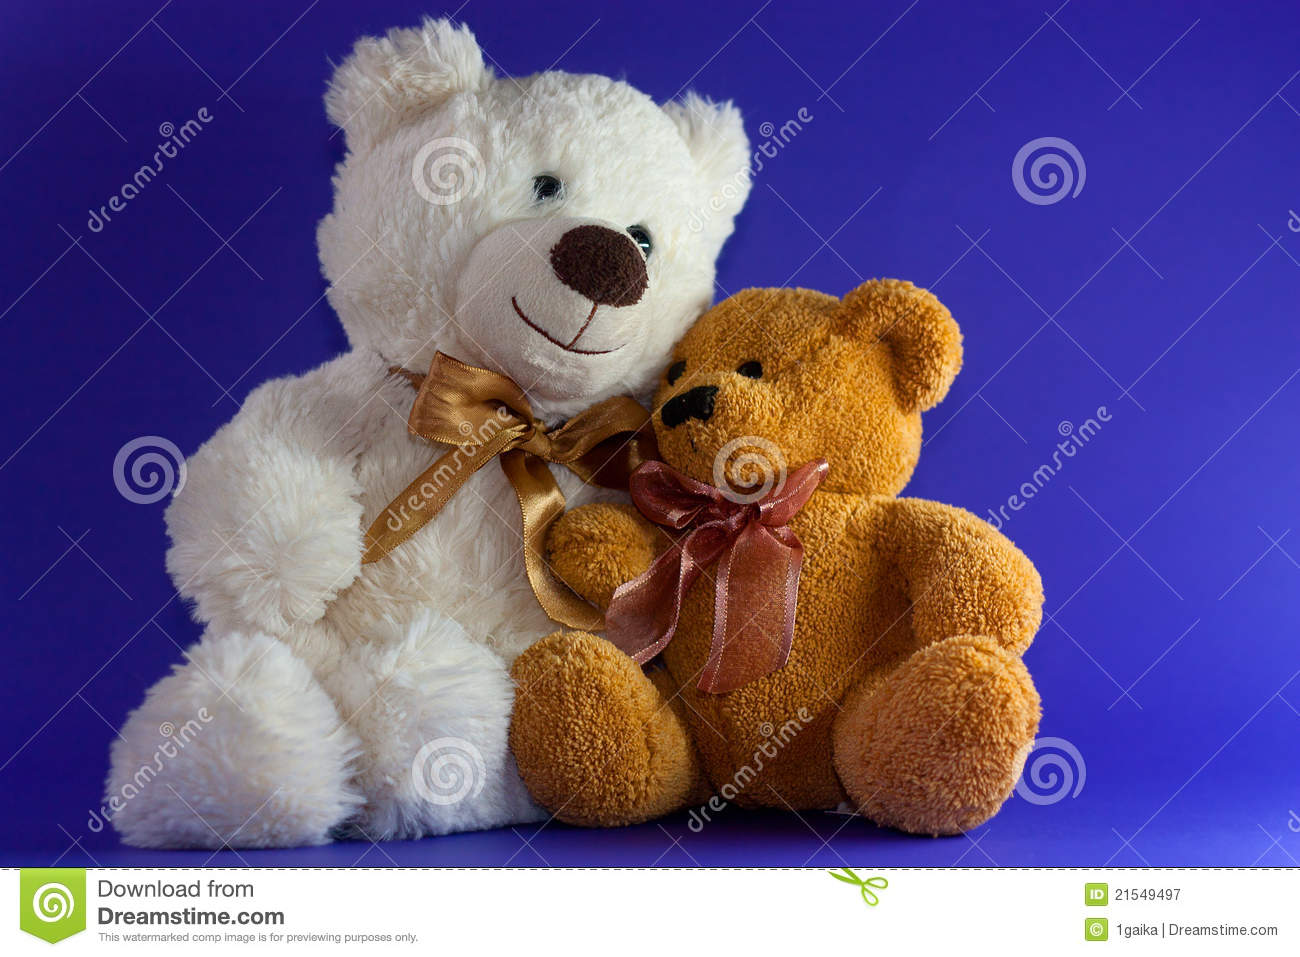 I Love U Hd Wallpapers Free Download Friendship 2 Teddy Bears Royalty Free Stock Photography